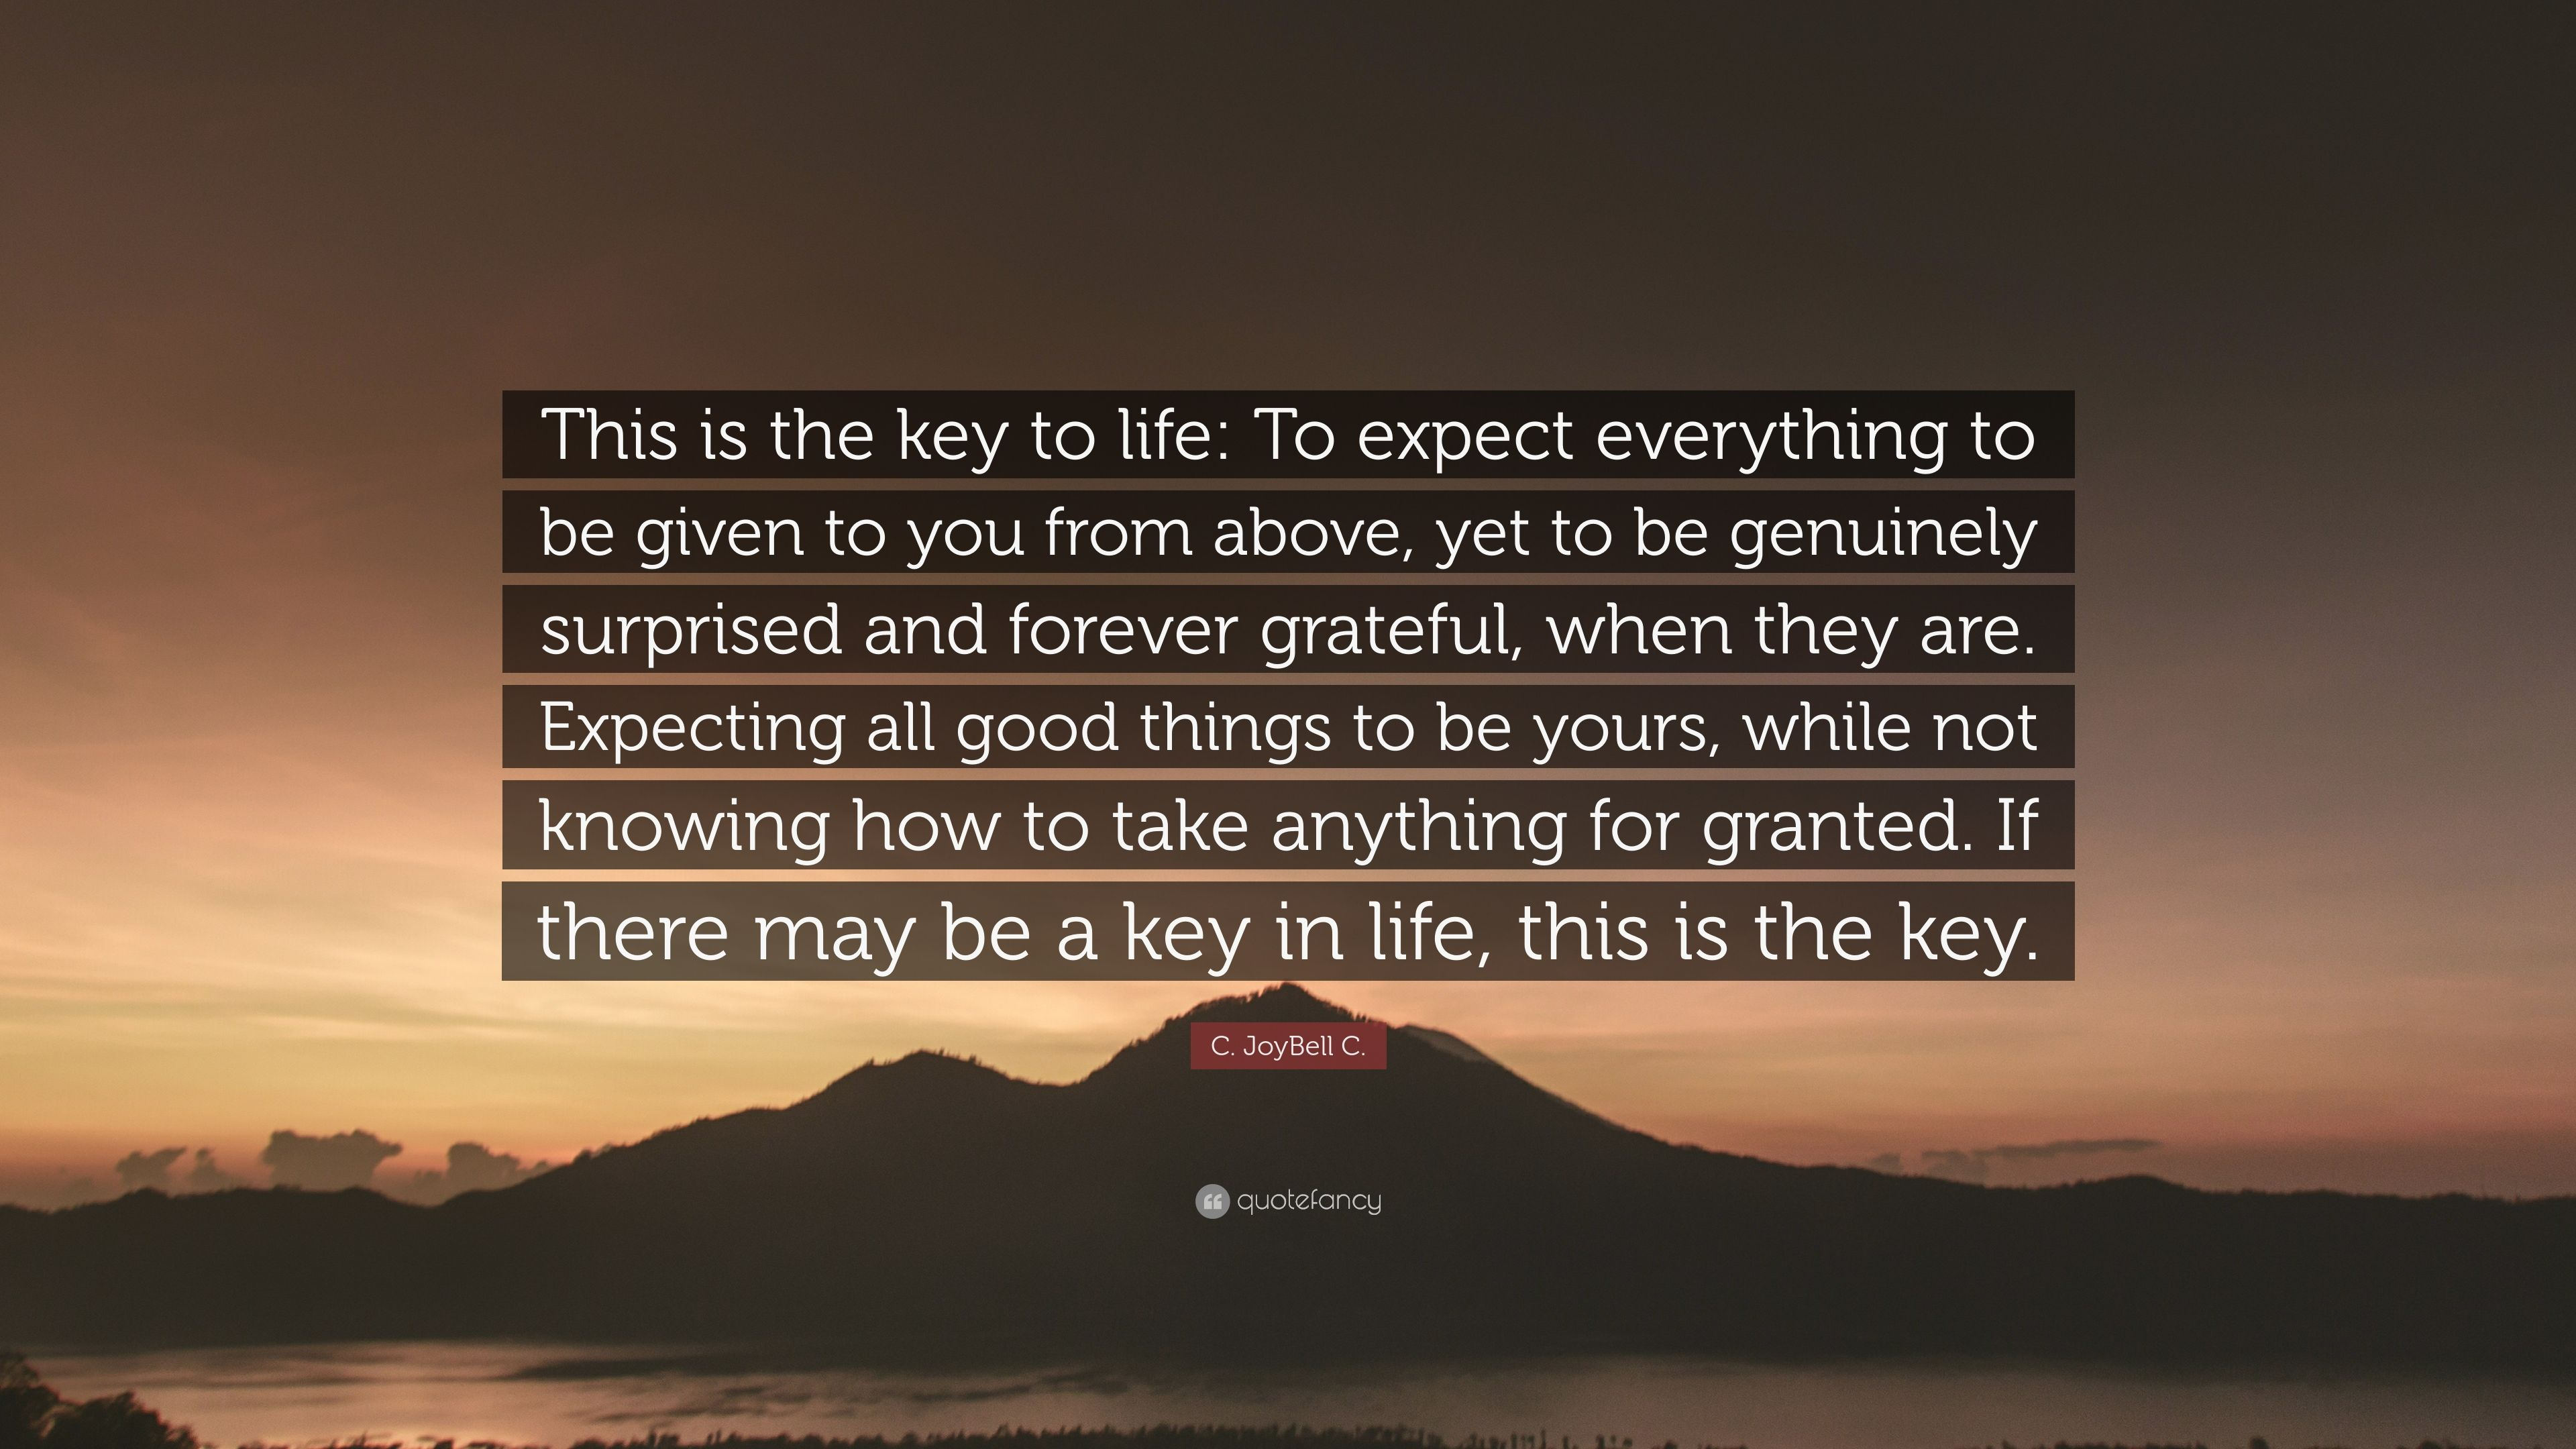 C Joybell C Quote This Is The Key To Life To Expect Everything